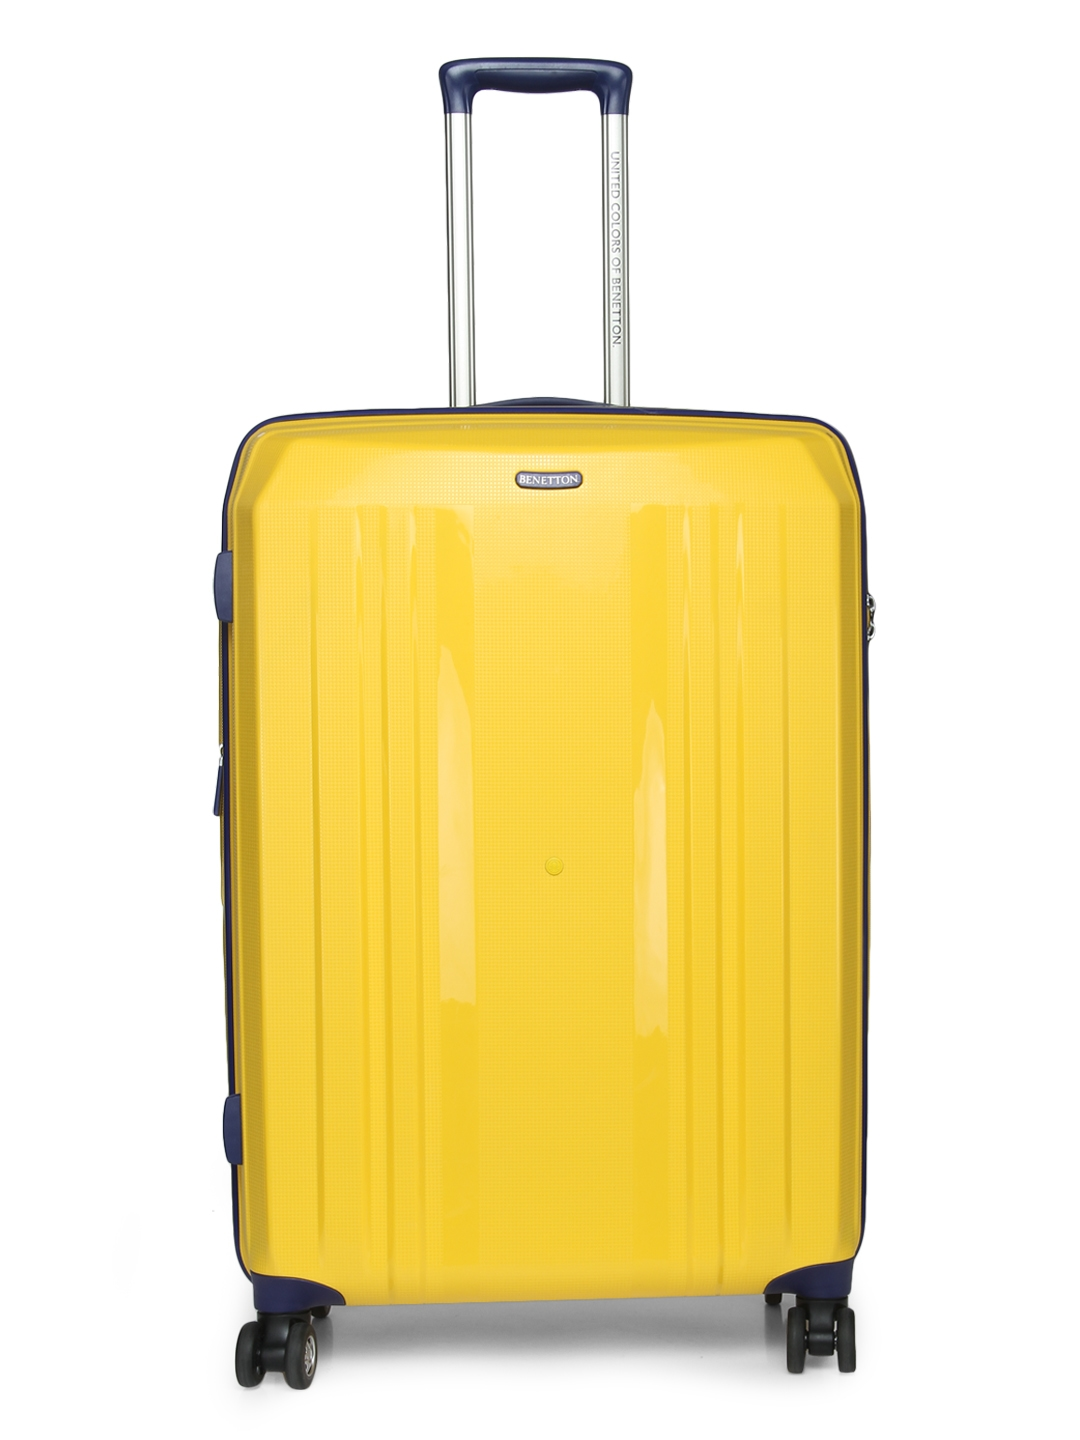 5d3bd0ec9d15 Buy United Colors Of Benetton Unisex Yellow Large Trolley Suitcase ...